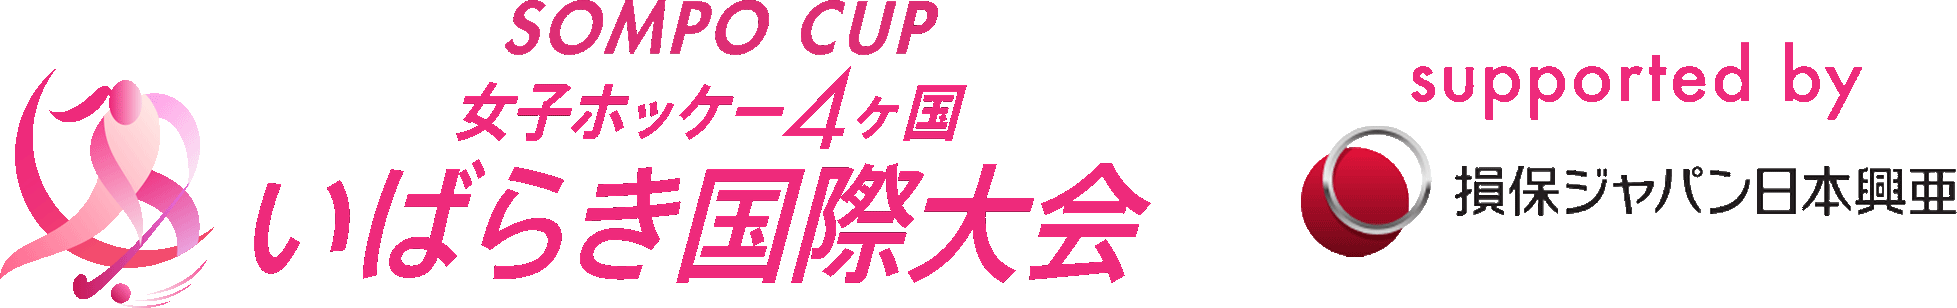 SOMPO CUP 女子ホッケー4ヶ国いばらき国際大会  supported by 損保ジャパン日本興亜 公式大会サイト